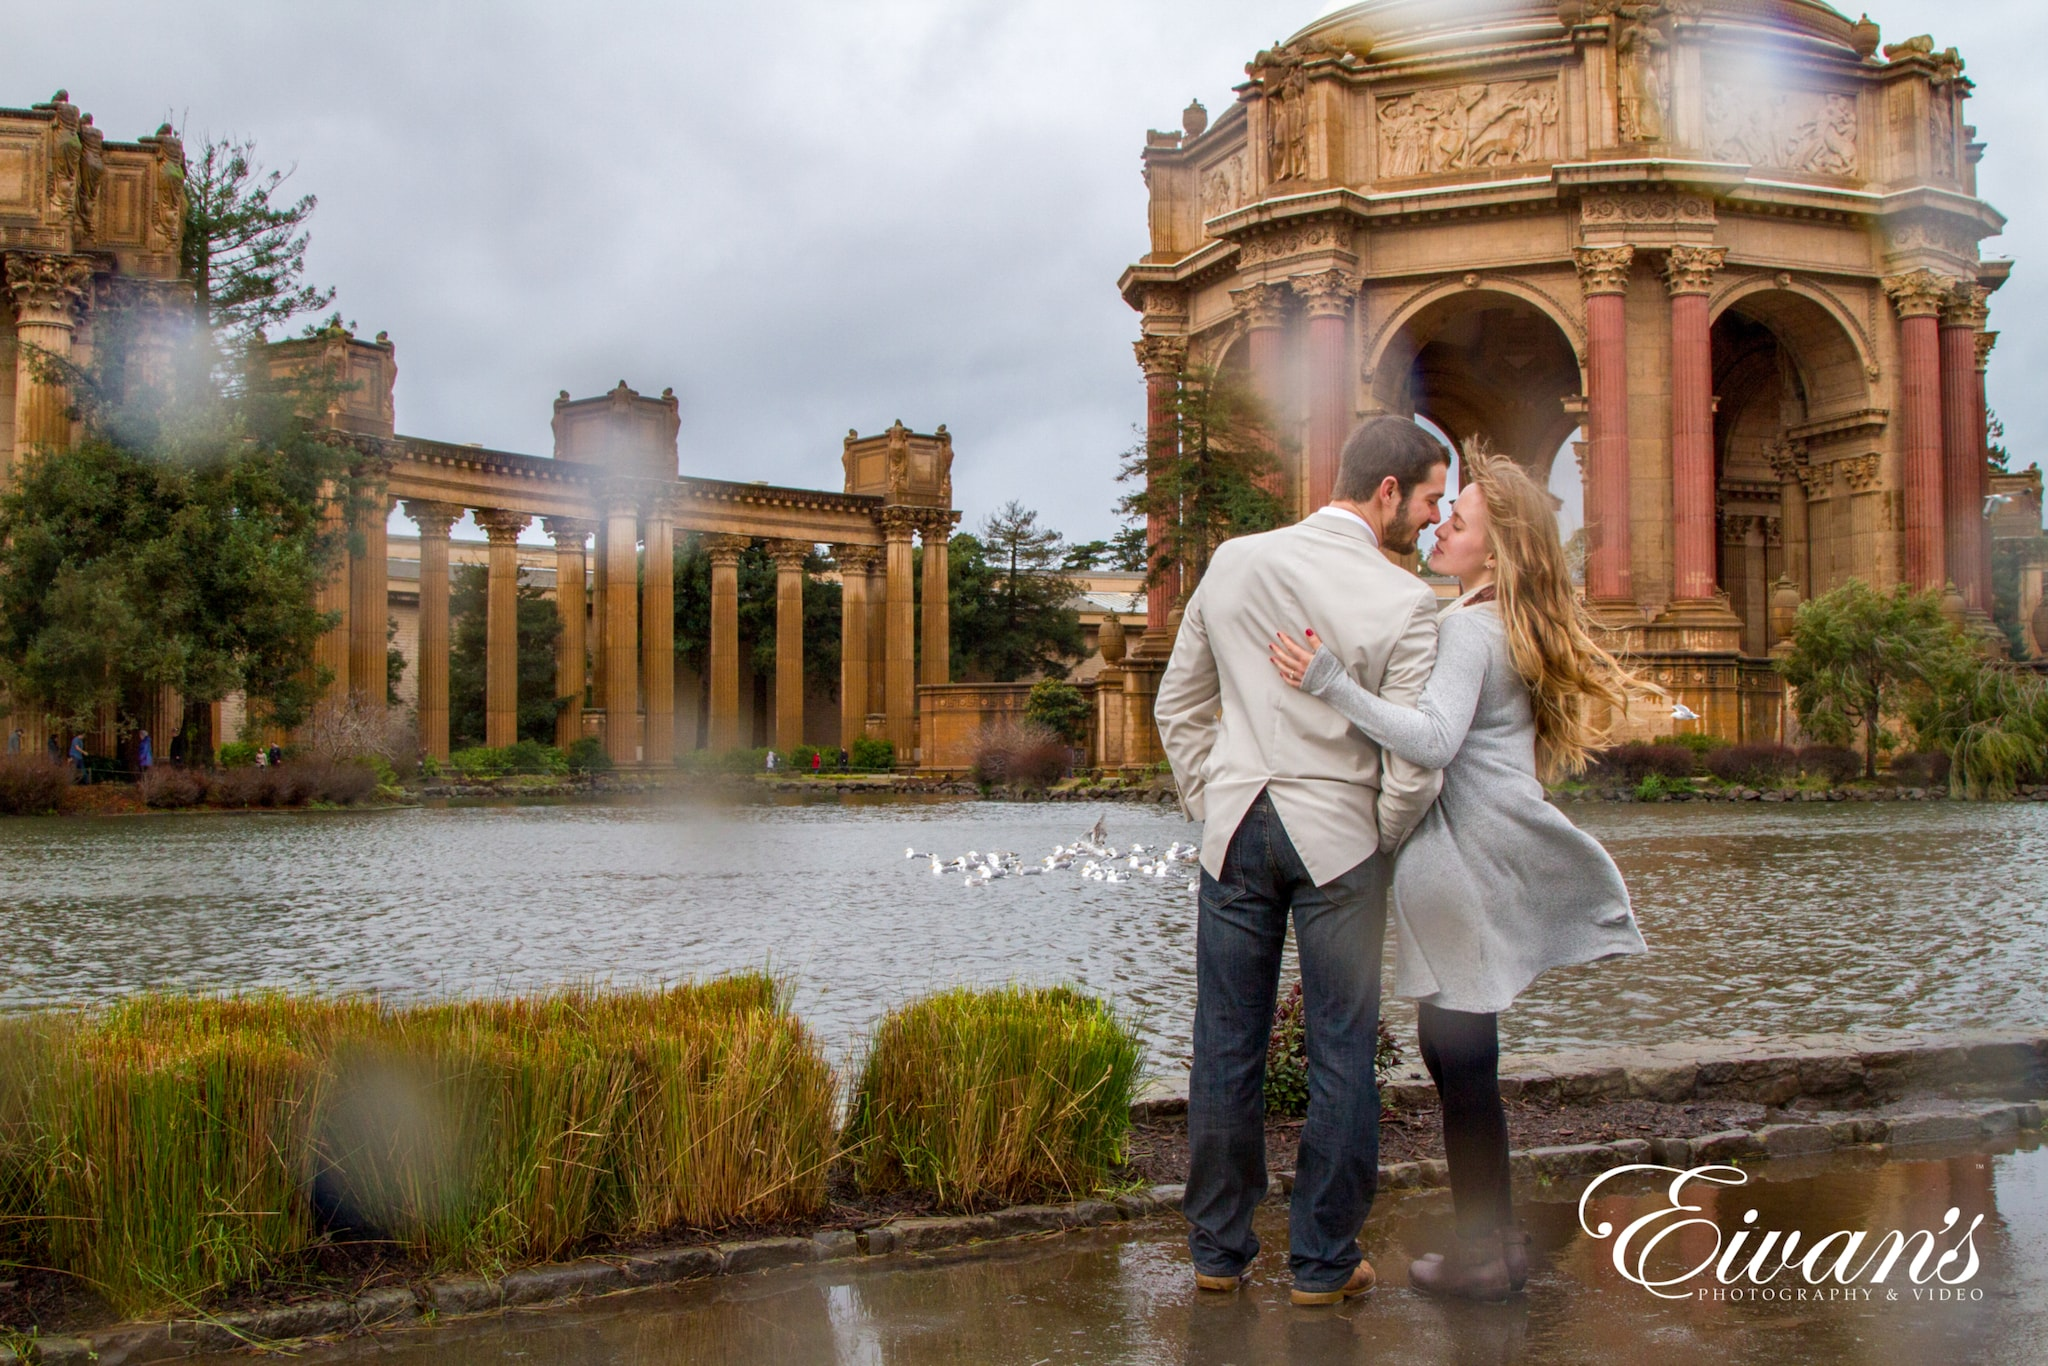 image of an engaged couple in the rain